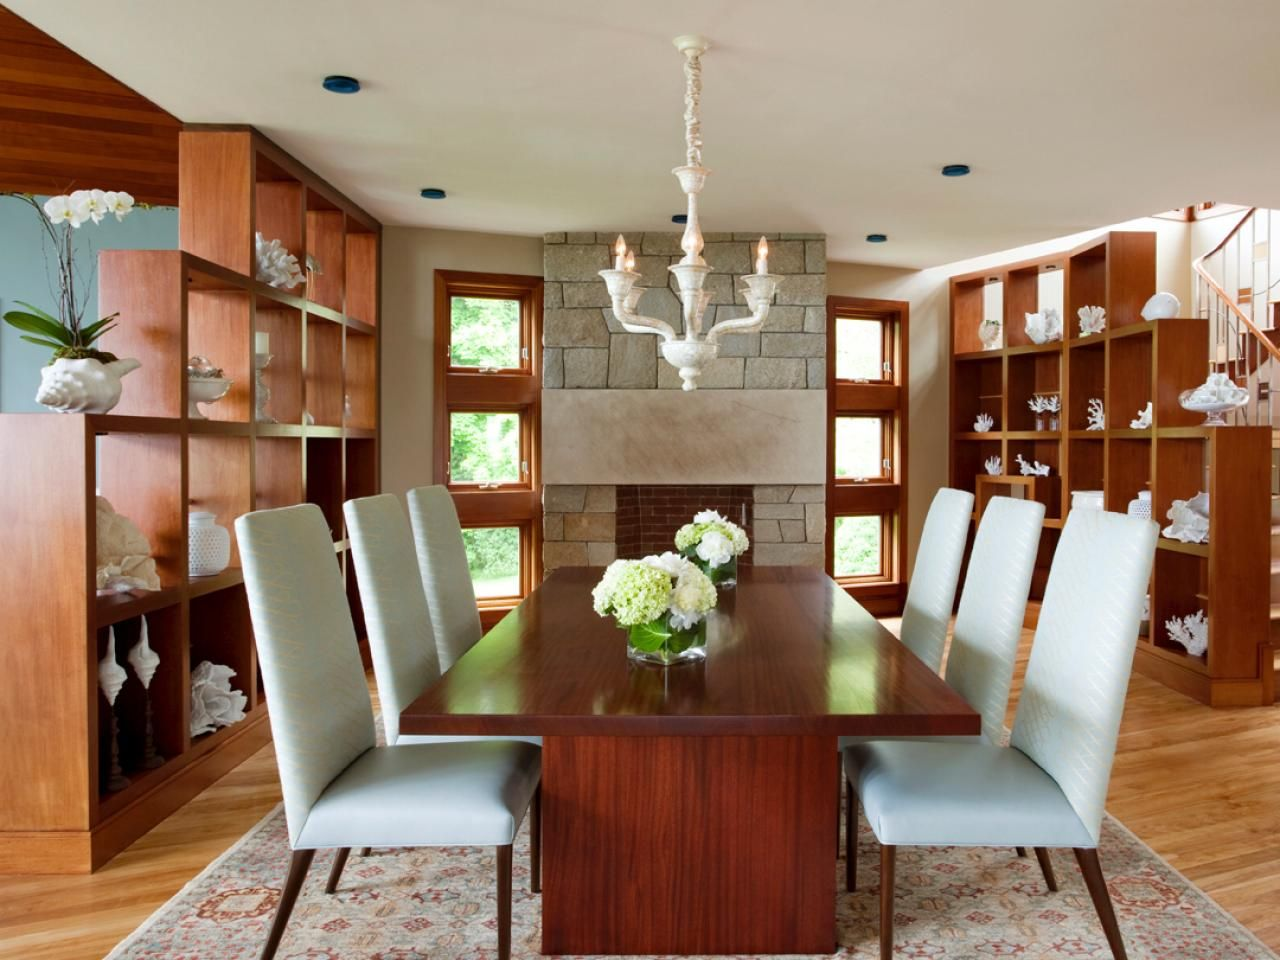 Make Space With Clever Room Dividers   Mahogany bookcase, Divider ...